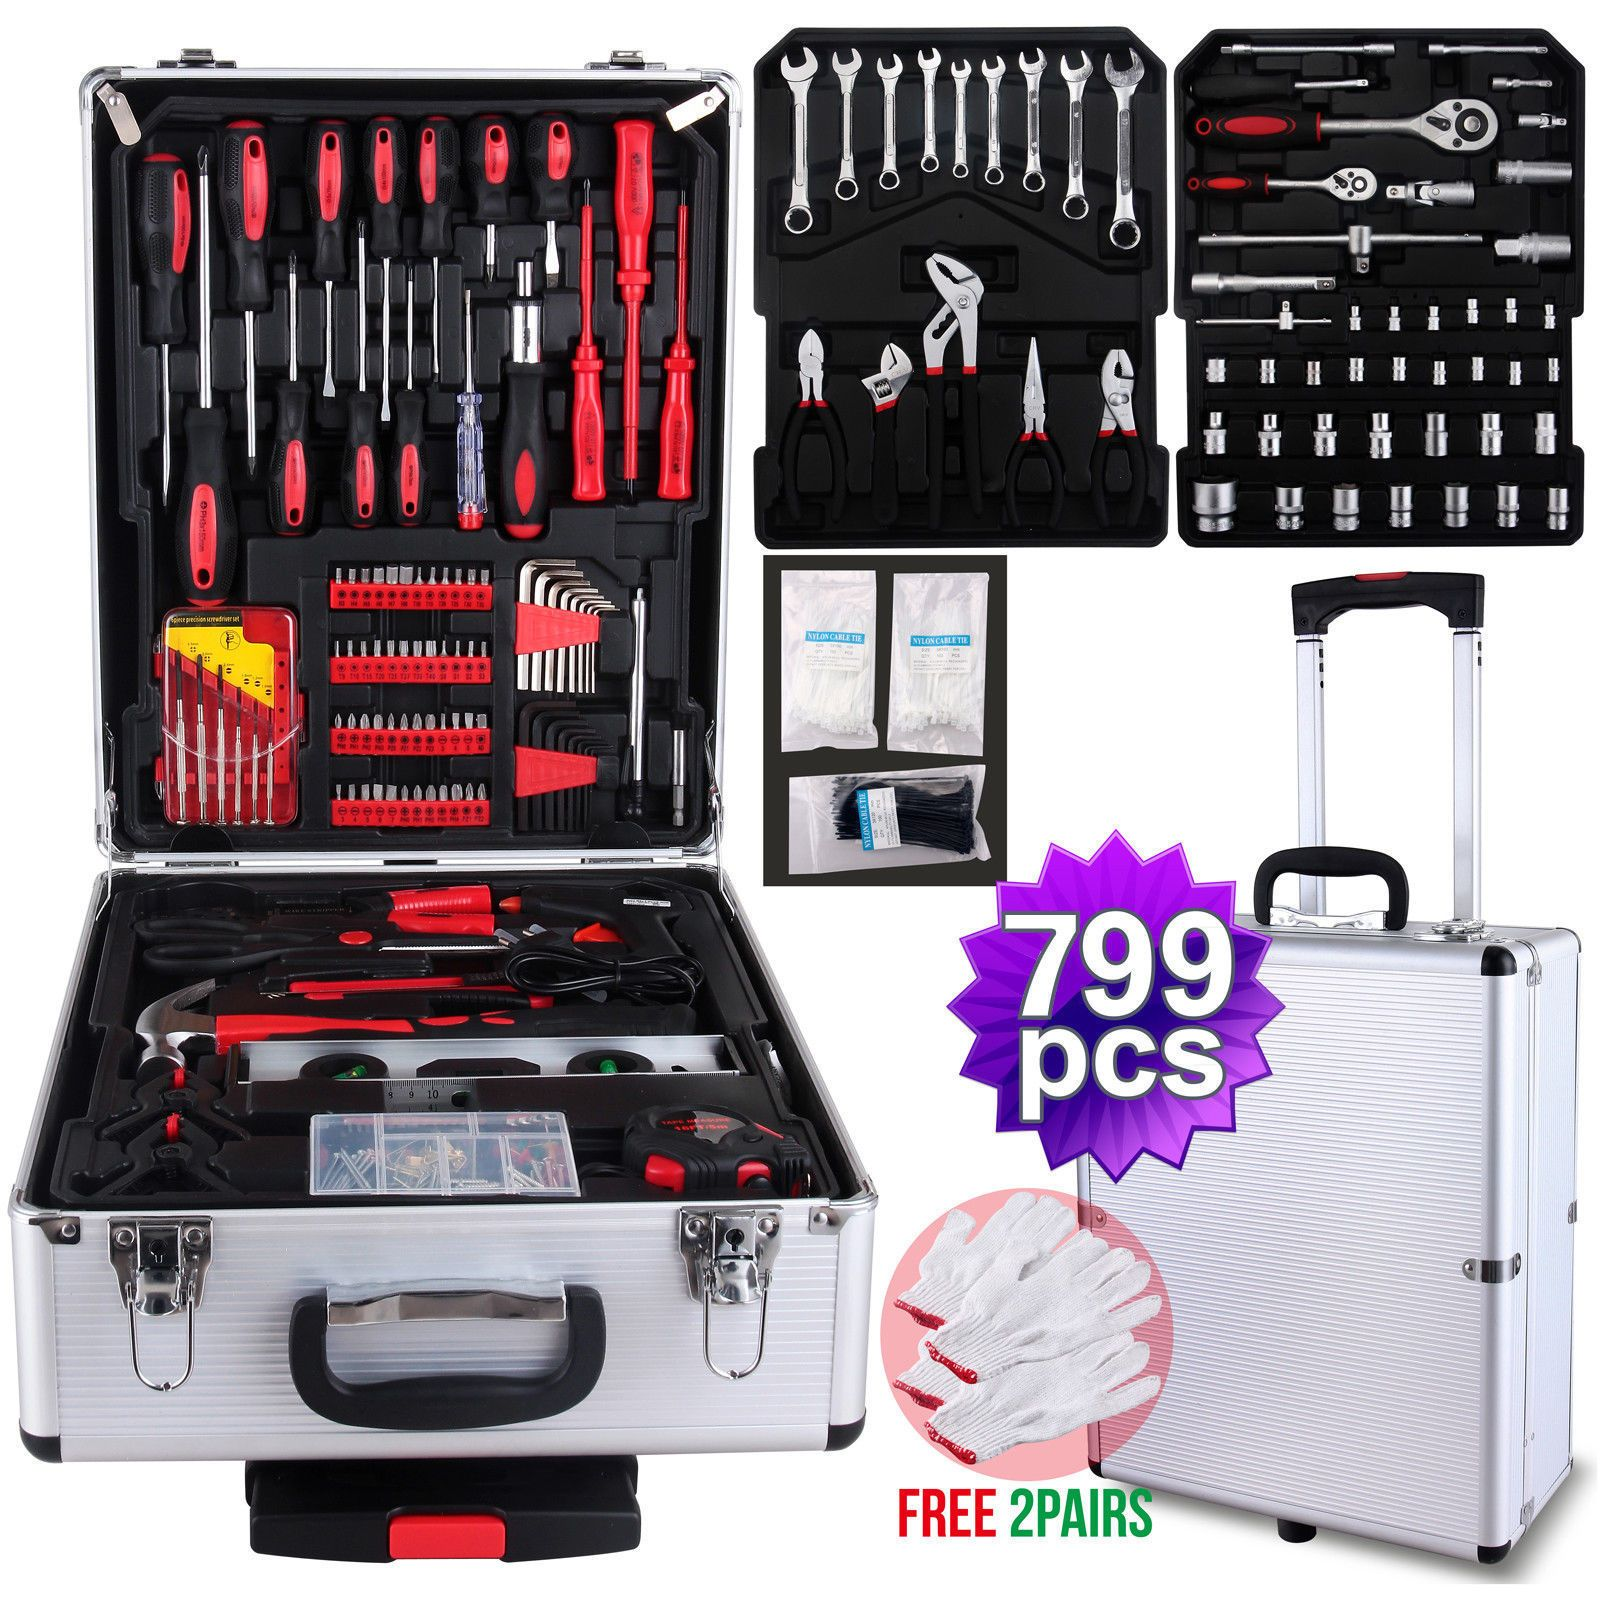 599 pcs tool set crimping tool with cutter